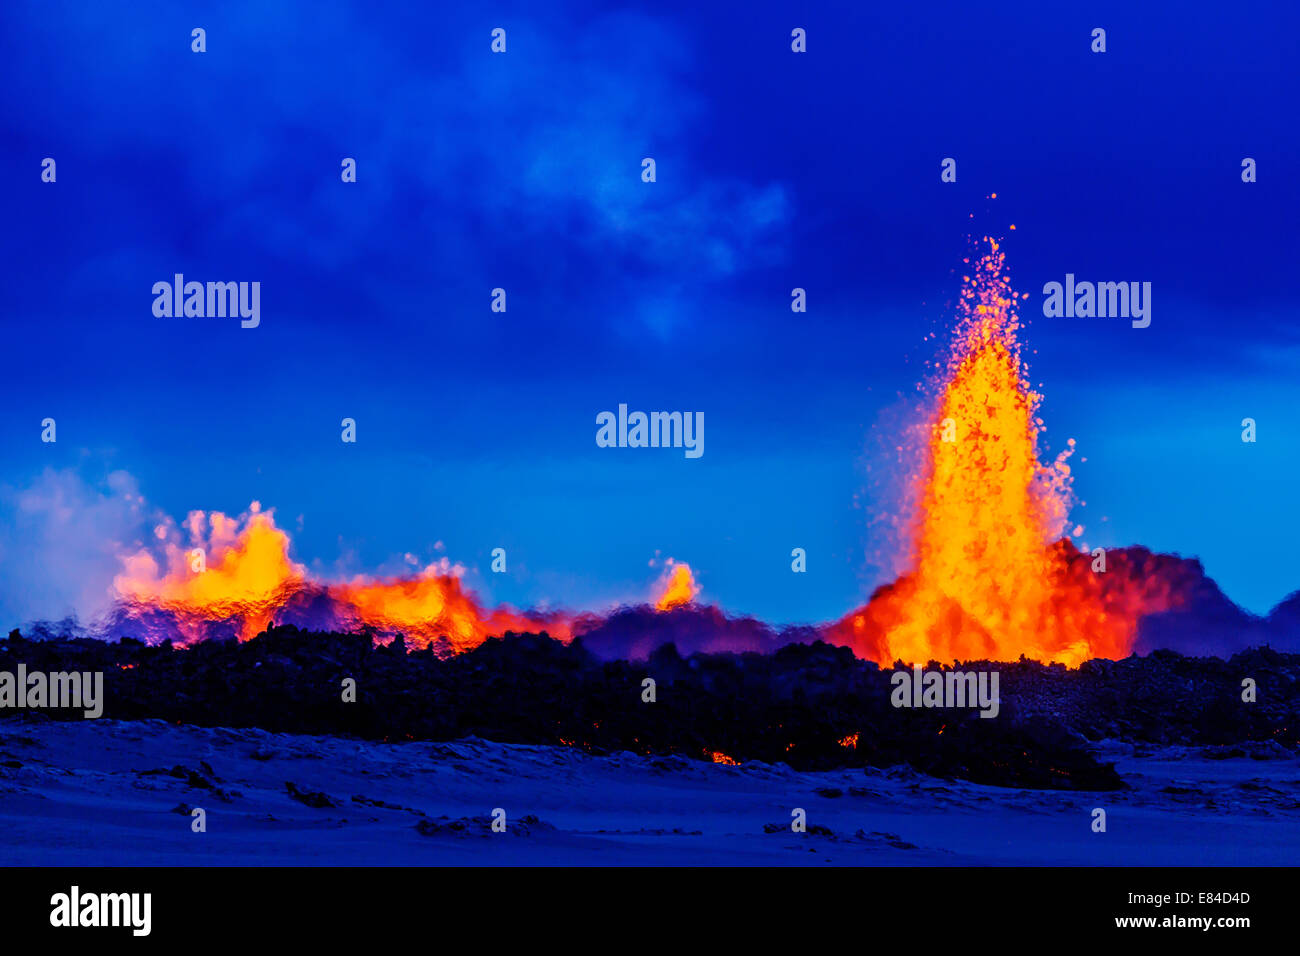 Lava fountains at the Holuhraun Fissure eruption near the Bardarbunga Volcano, Iceland. Stock Photo